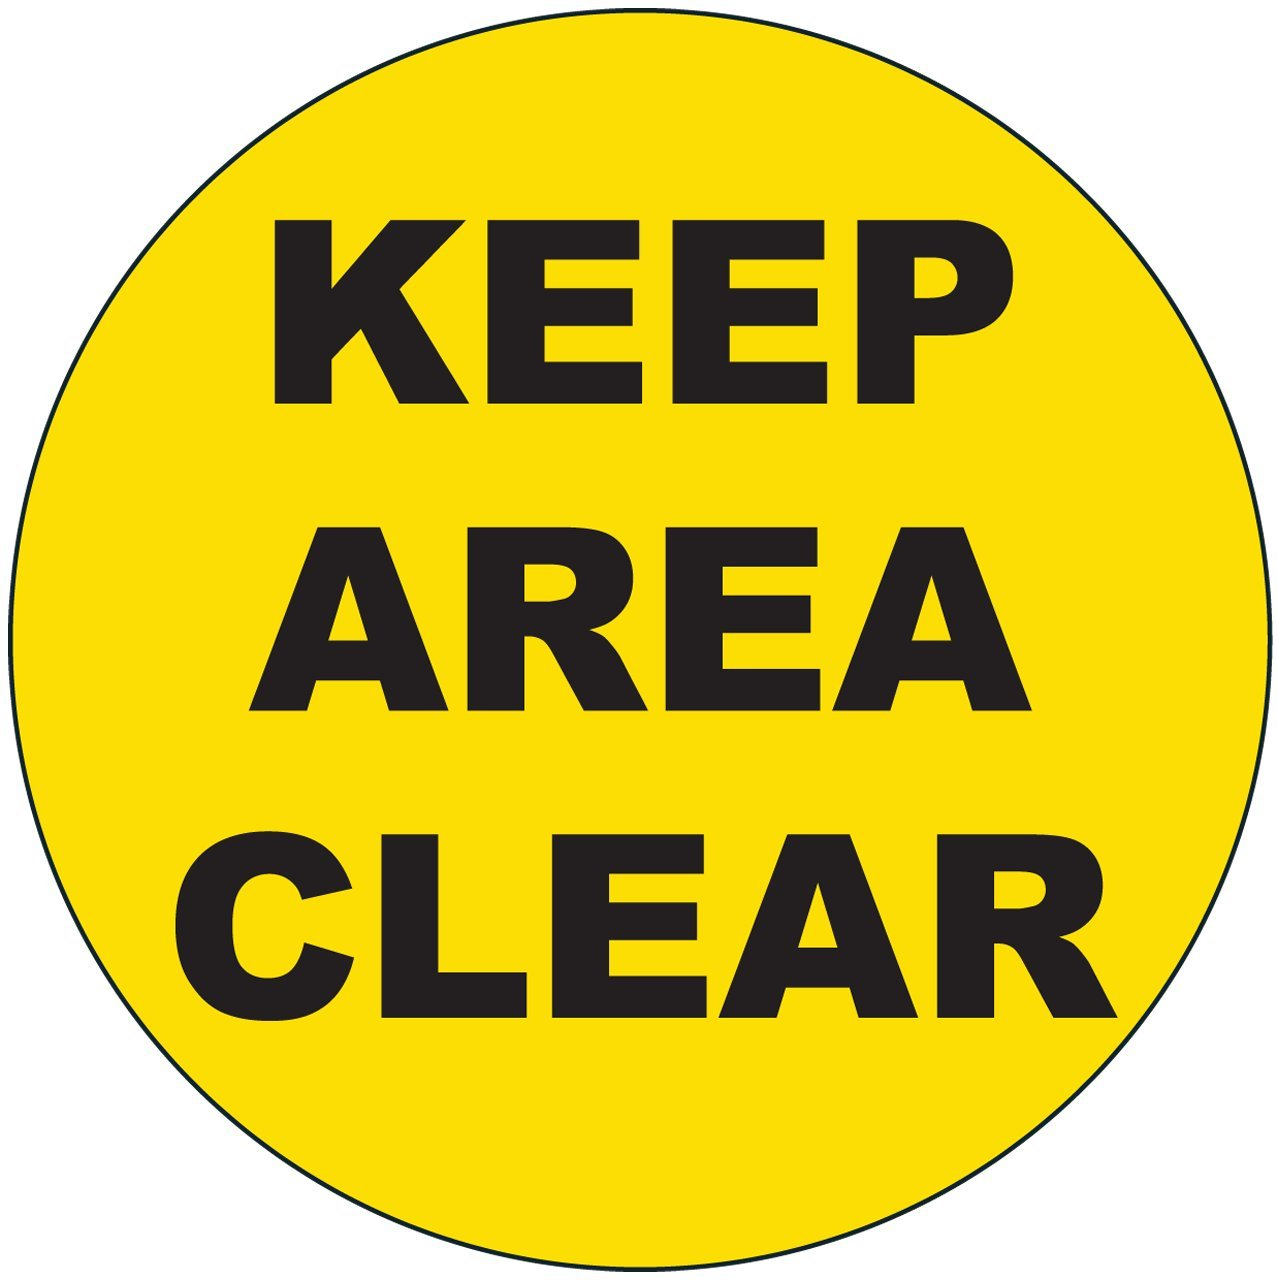 Free Warehouse Safety Cliparts, Download Free Clip Art, Free.